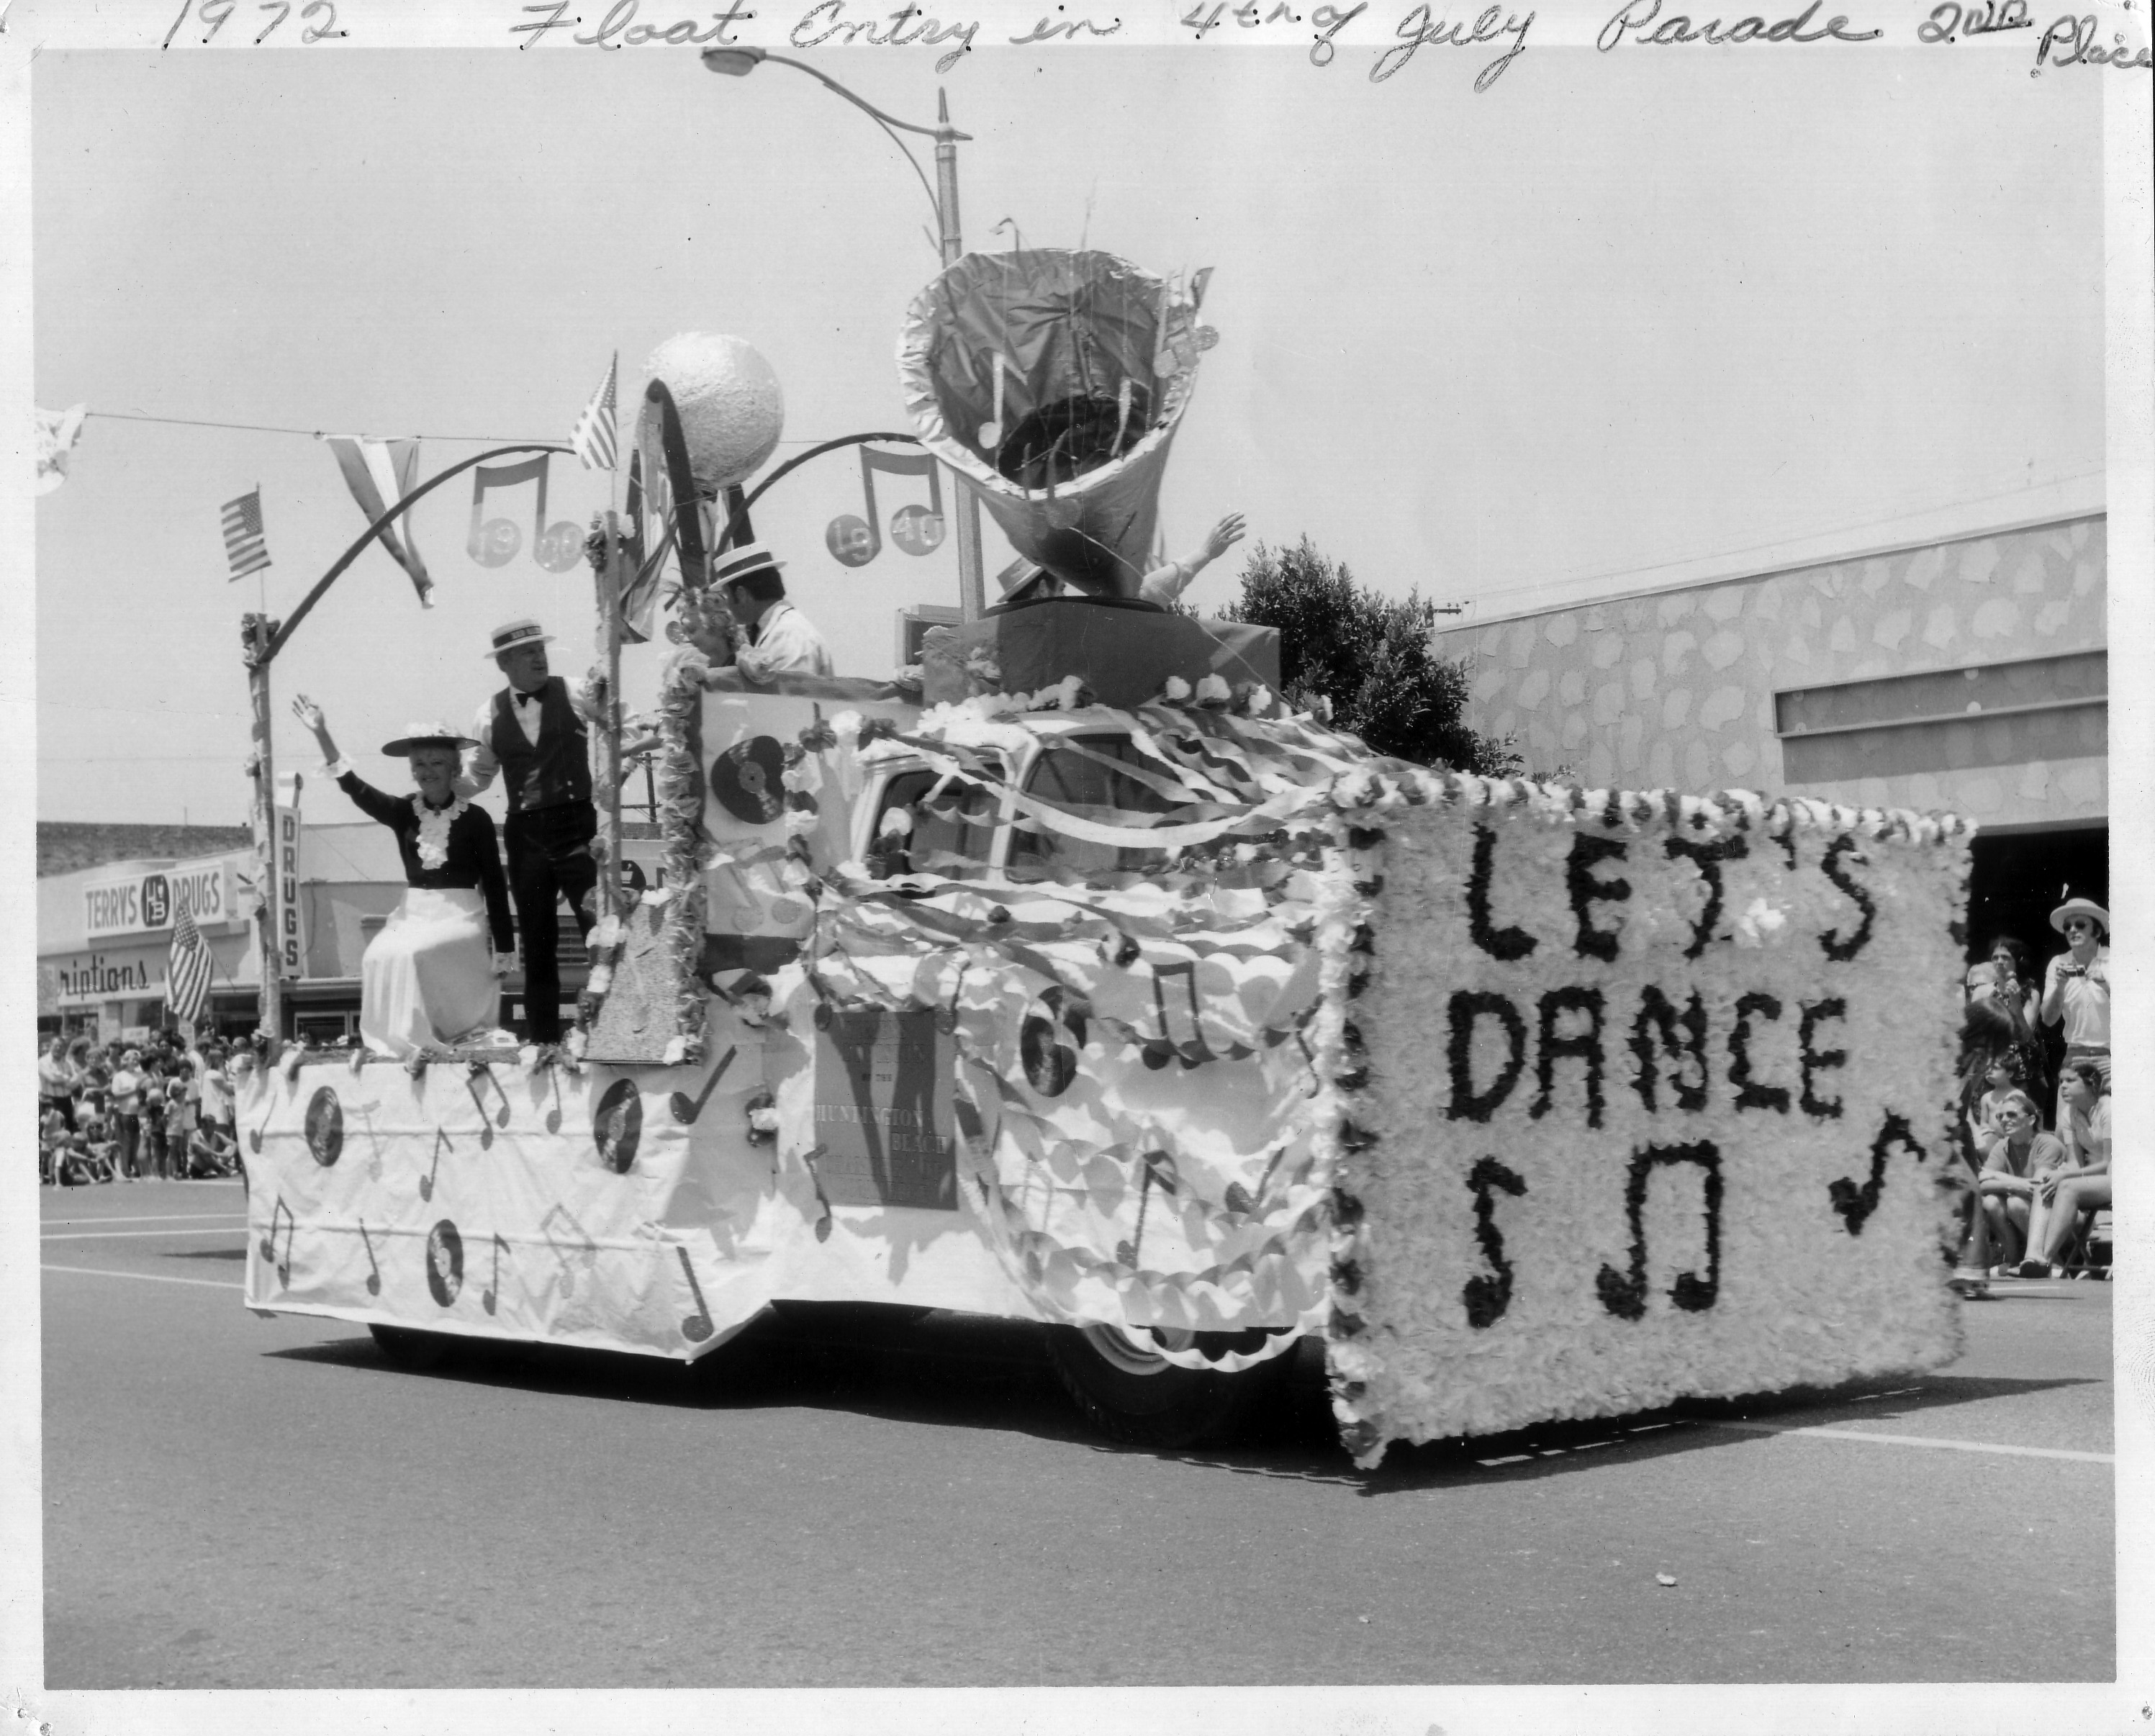 Huntington Beach 4th of July Parade 1972